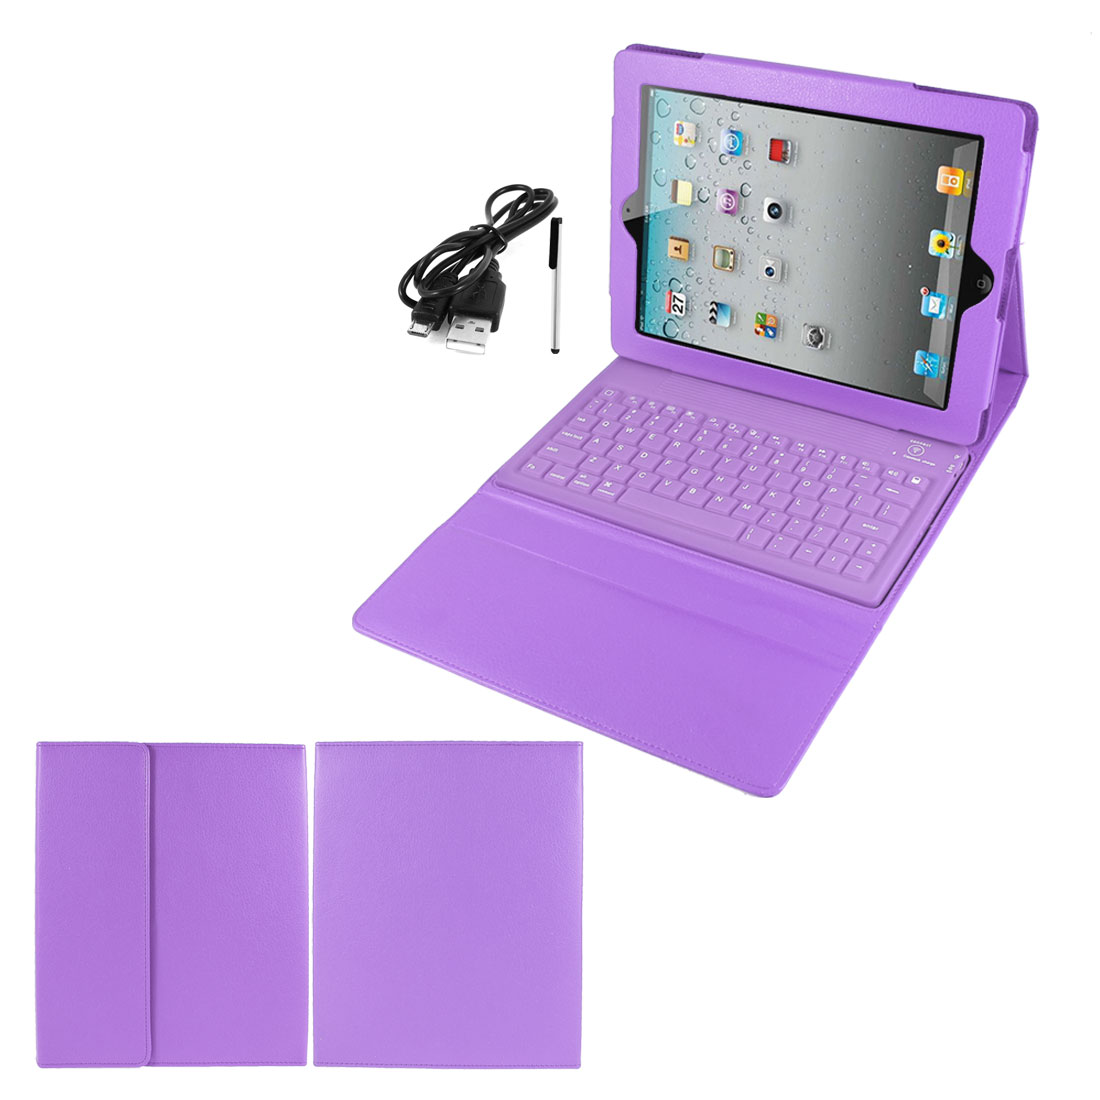 Purple PU Leather Magnetic Closure bluetooth Wireless Silicone Keyboard Stand Case Cover for iPad 2 3 4